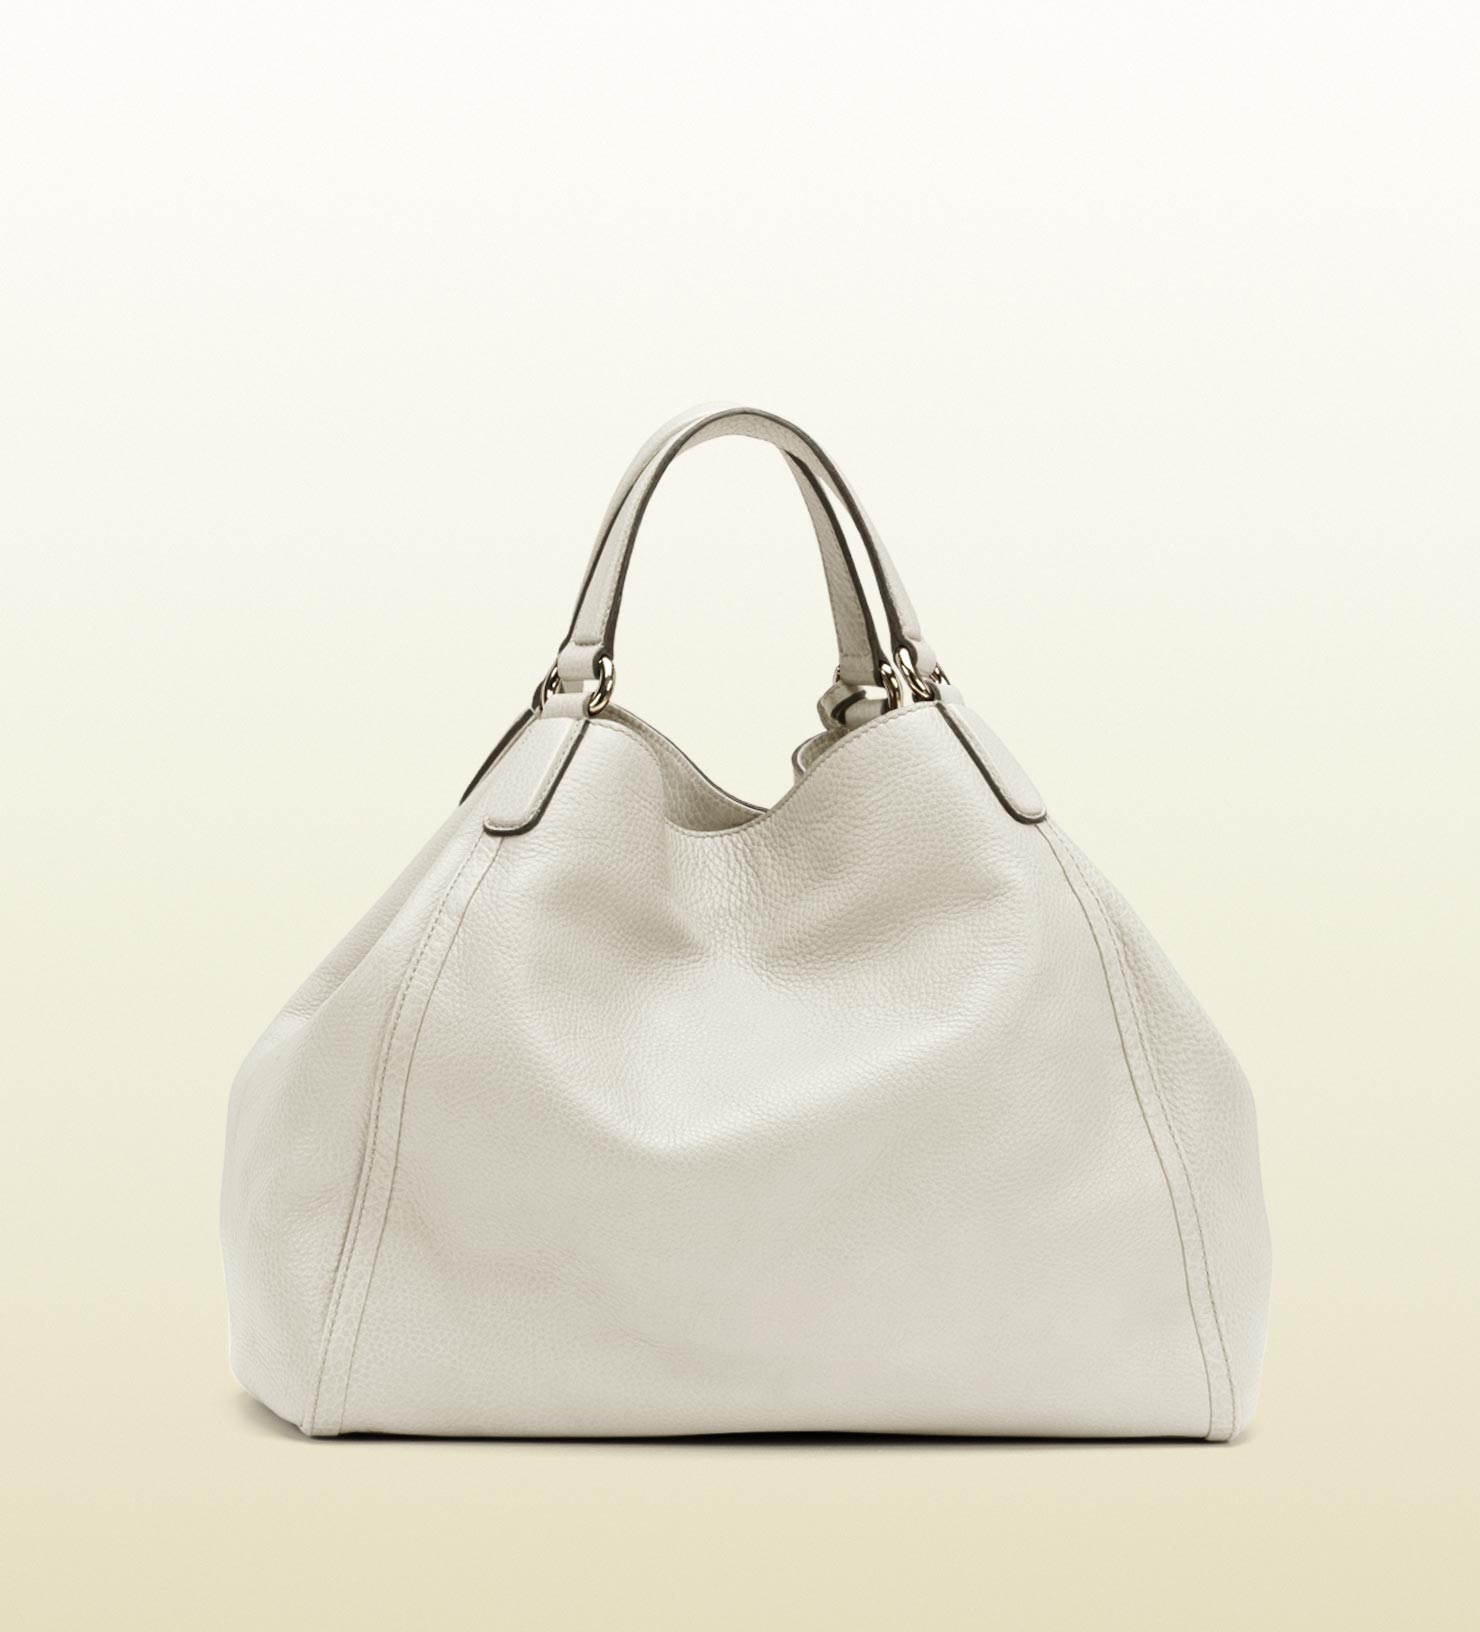 68406a0e9d46 Lyst - Gucci Soho Leather Shoulder Bag in White